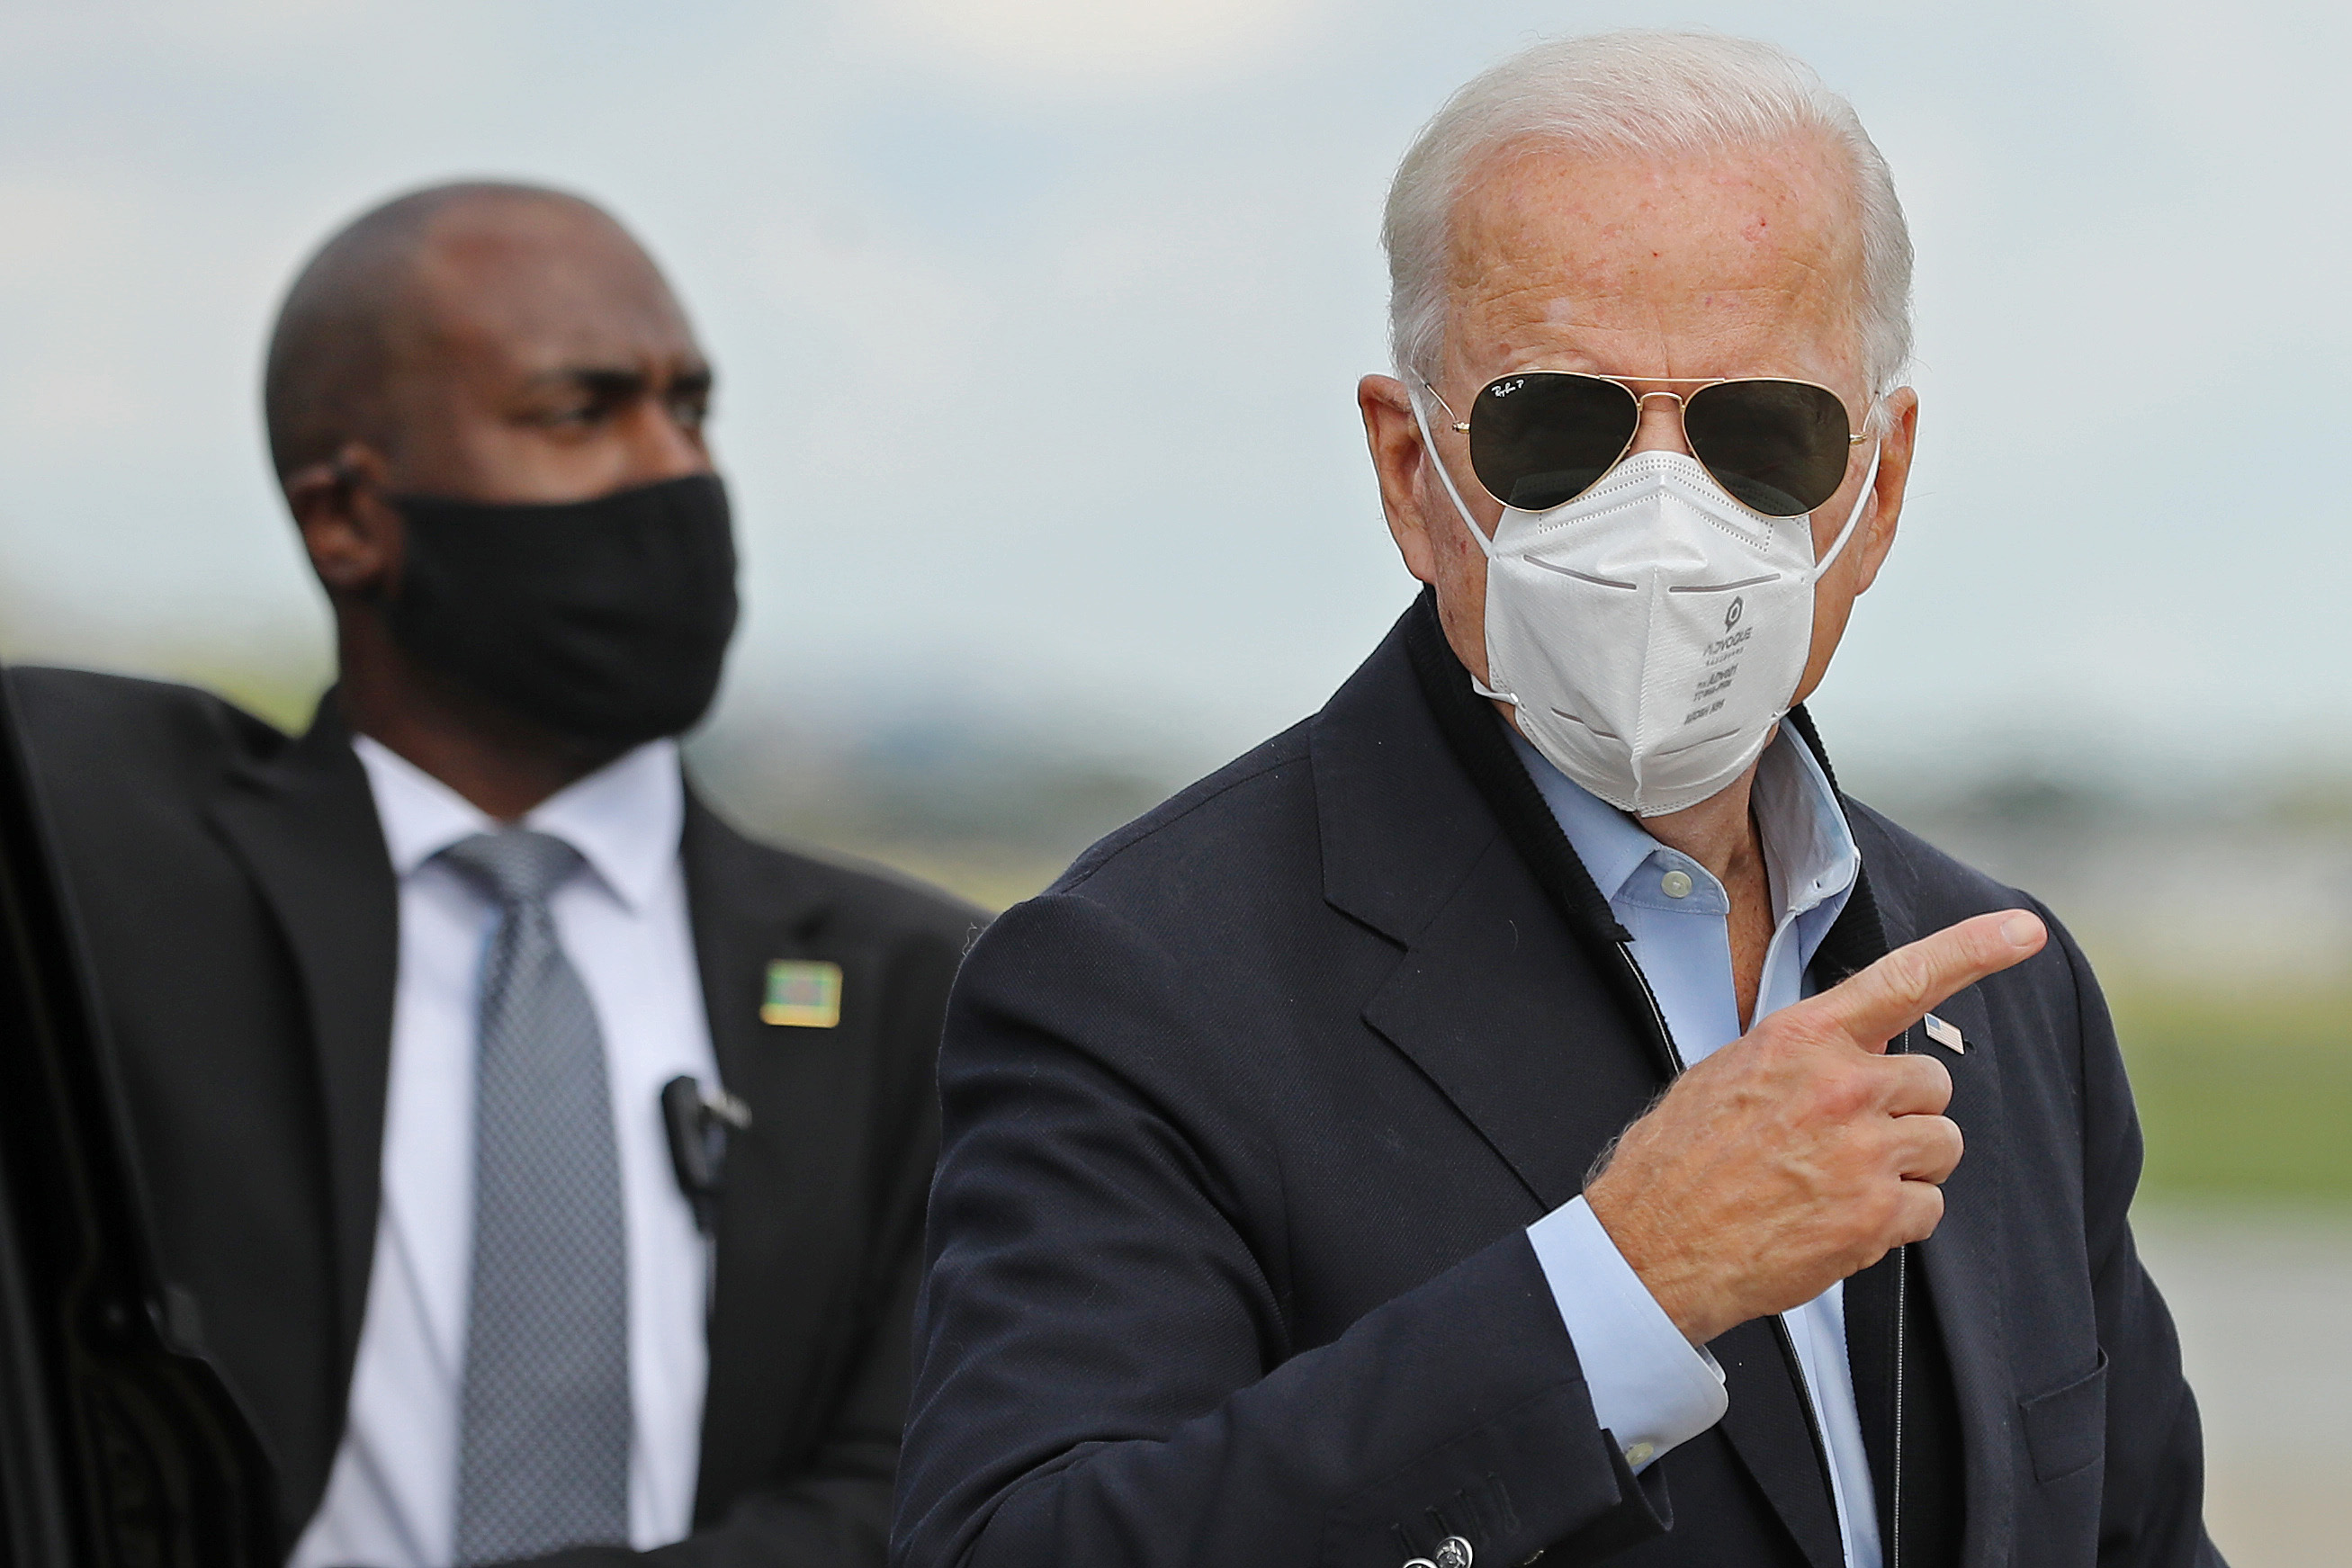 Democratic presidential nominee Joe Biden prepares to board a plane in New Castle, Delaware, on his way to Grand Rapids, Michigan, on October 2.